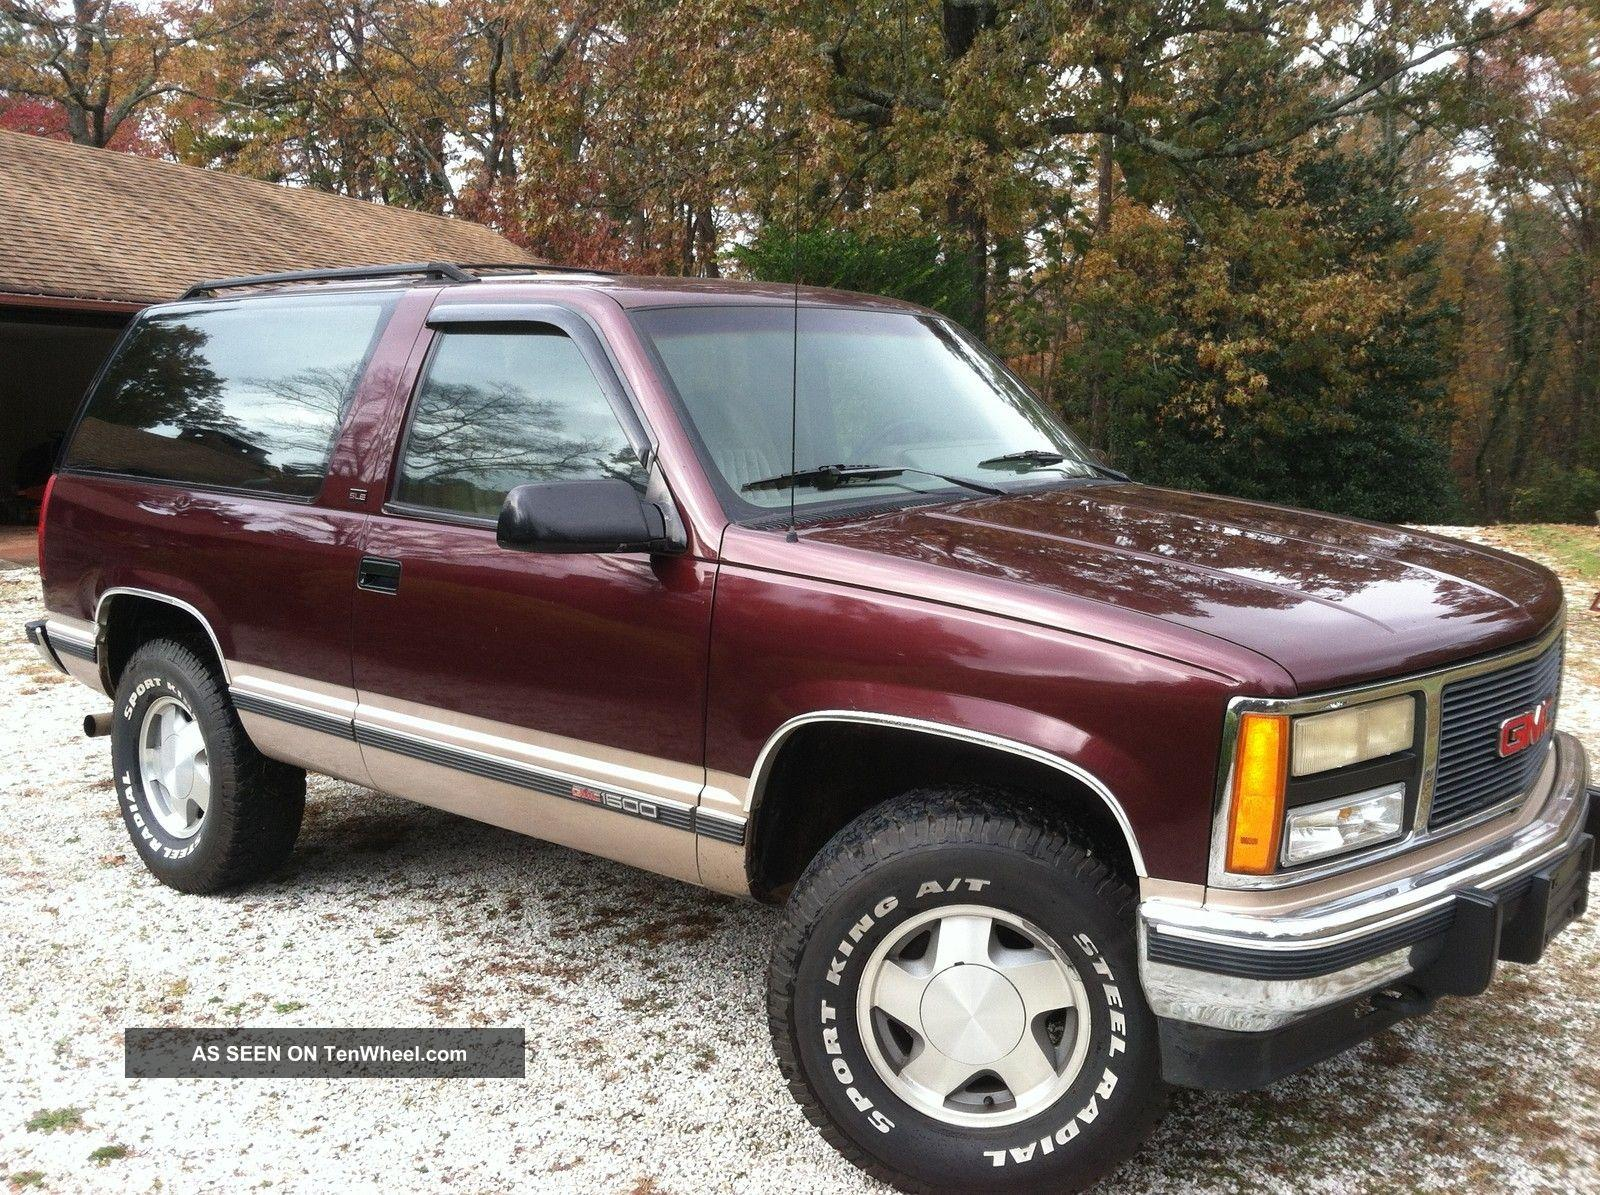 1993 gmc yukon information and photos zombiedrive. Black Bedroom Furniture Sets. Home Design Ideas